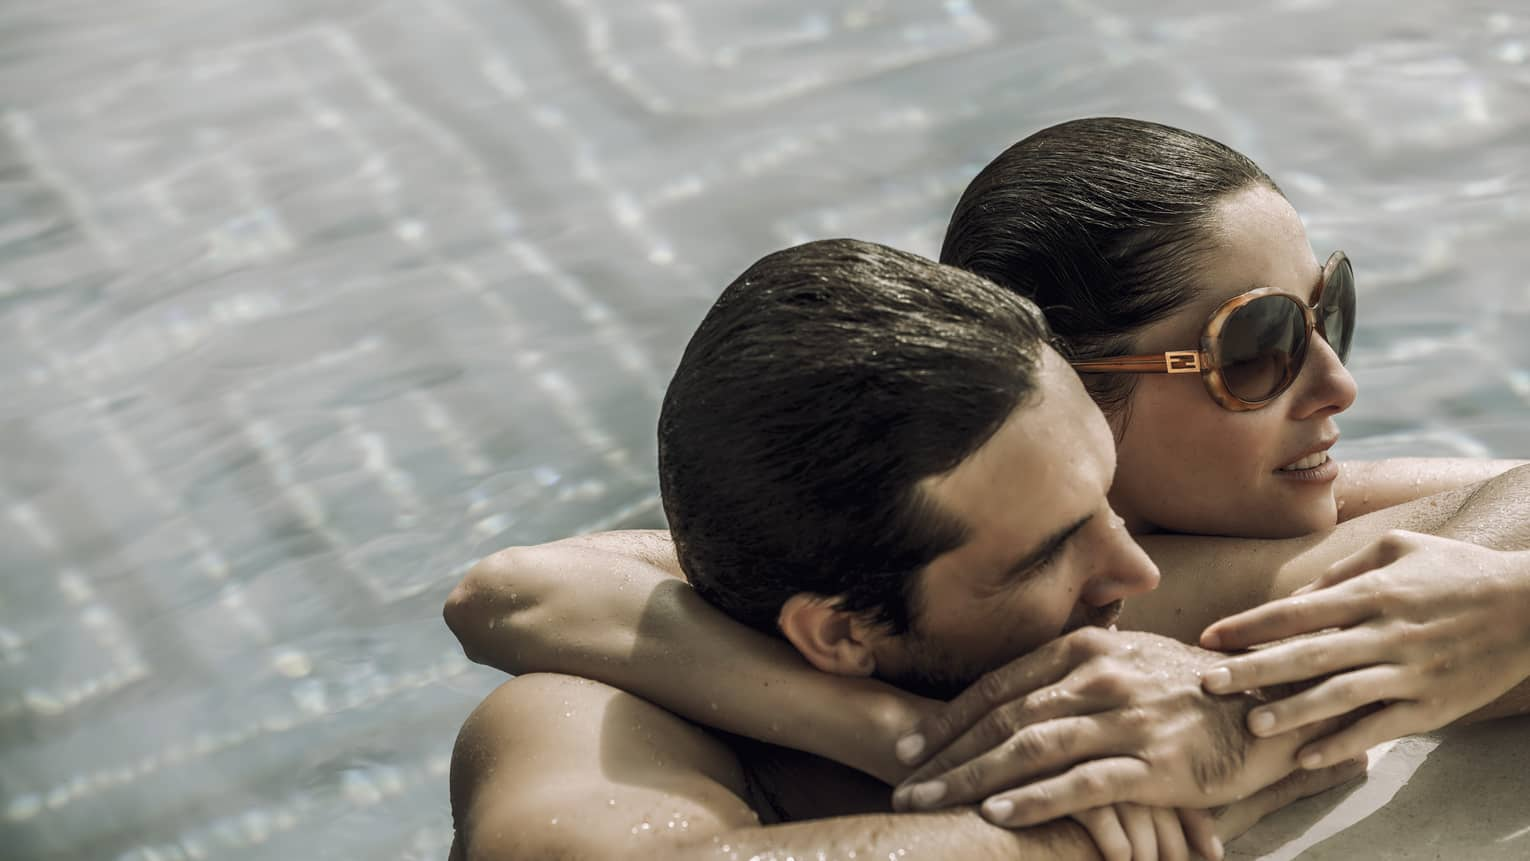 A woman wraps her arm around a man's shoulders as they lean against the side of the pool and gaze into the distance